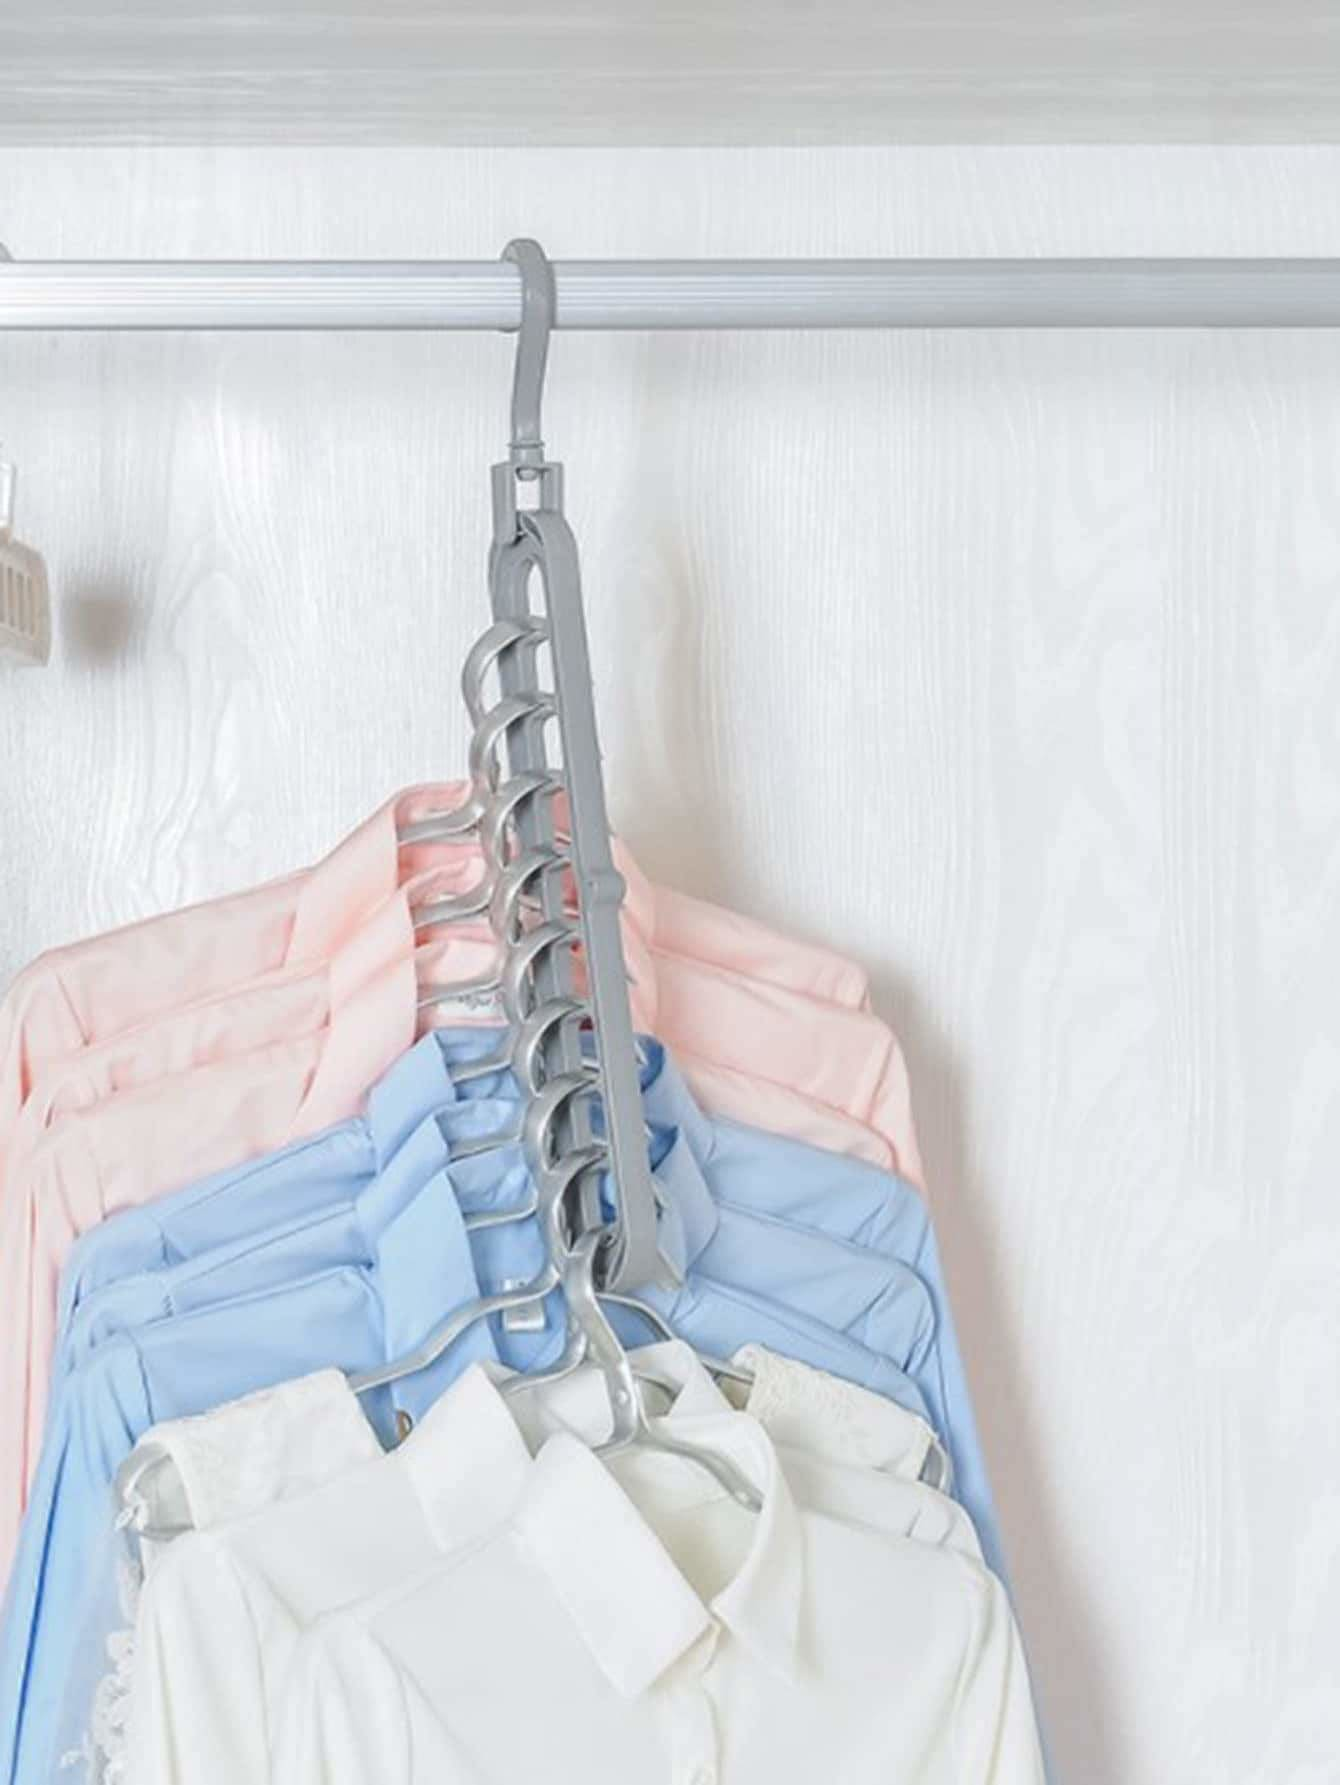 9 Hole Cloth Hanger - Hangers & Organizers